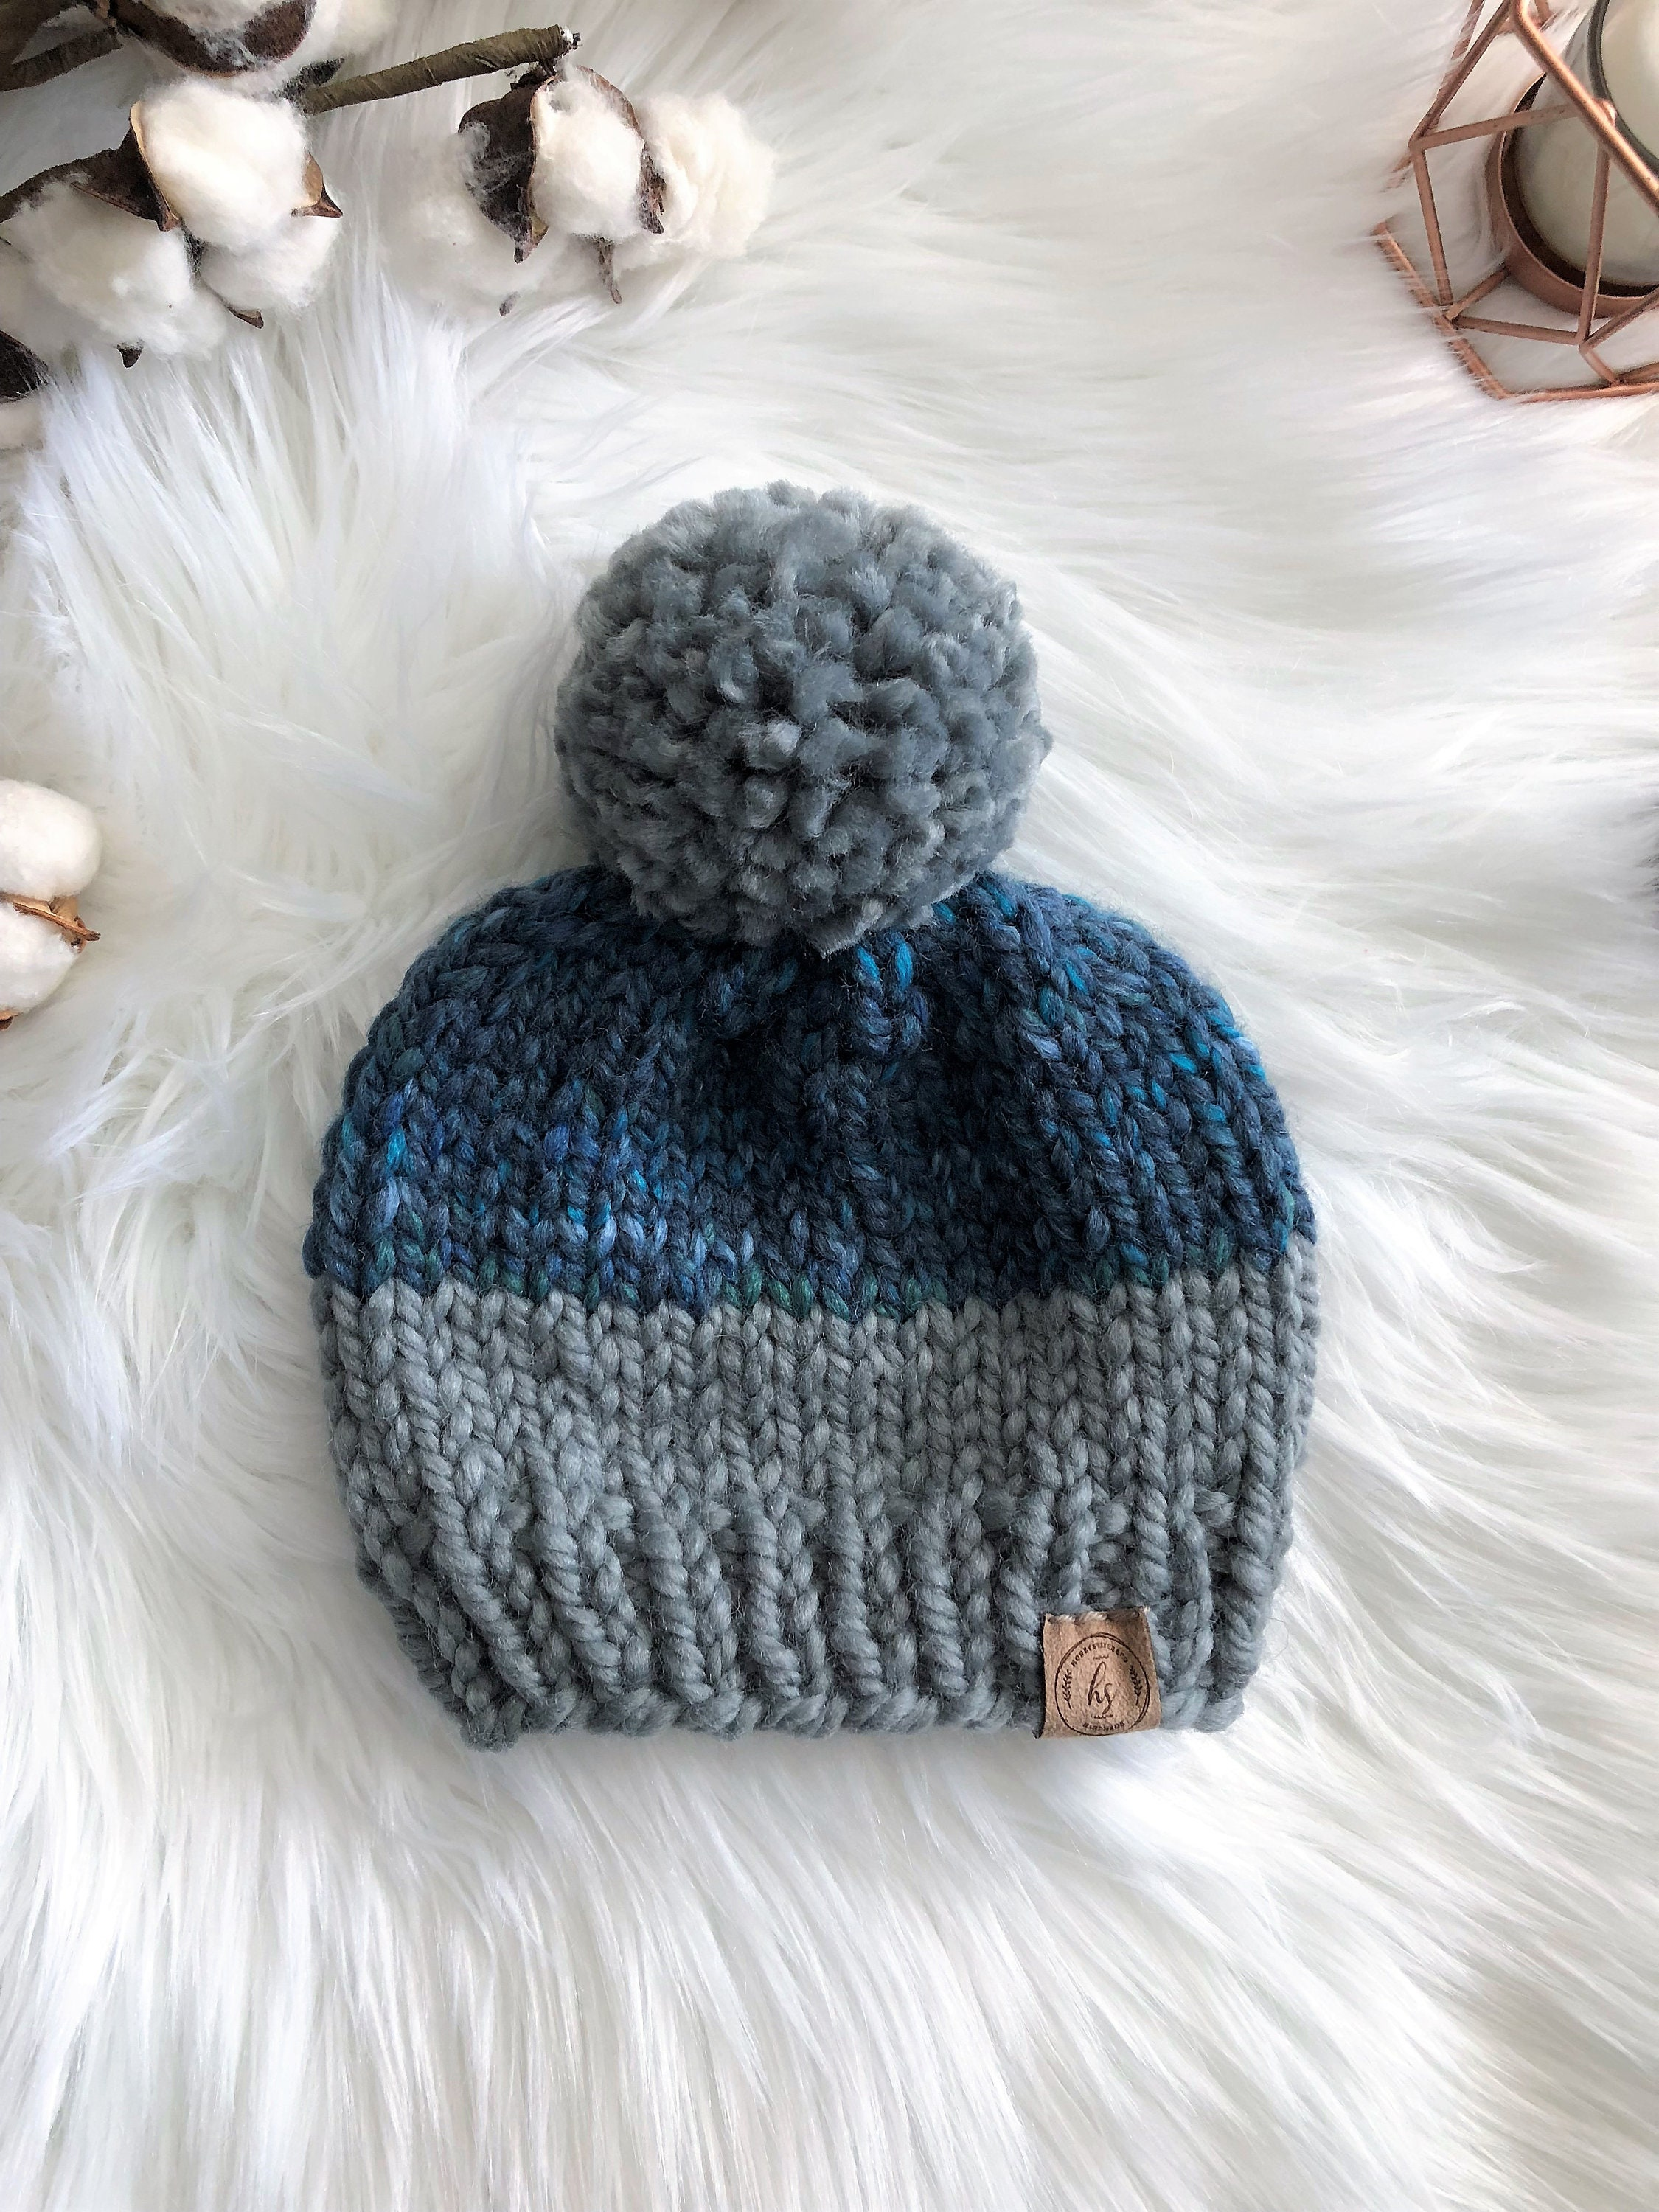 ccf05e7fe06 6-12 MONTH Blue Gray Pom-Pom Hat/Baby Knit Hat/Knitted Beanie for Baby/Hat  for Baby Boy/Baby Boy Gift/Big Pom Kids Hat/Boy's Winter Beanie